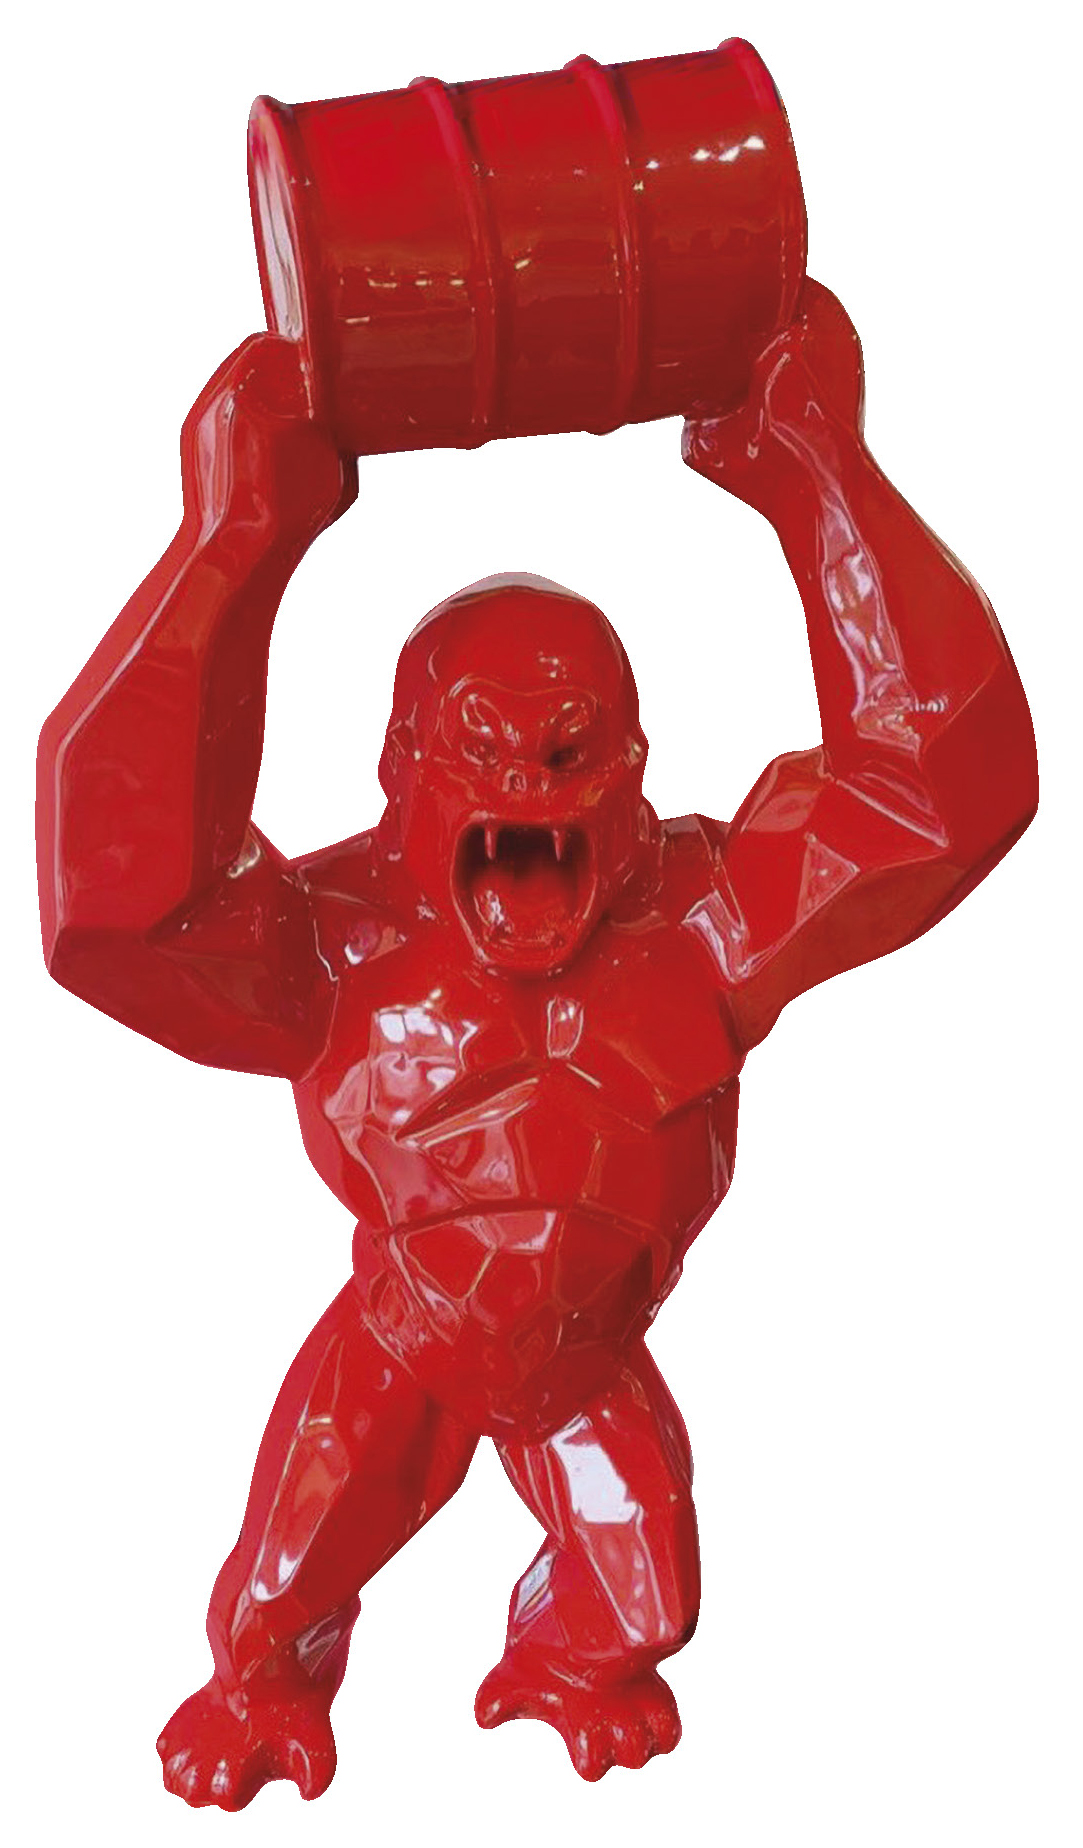 Orlinski Richard (1966) Kong Oil Baril - Sculpture resin - N°4/8 - 68 cm -